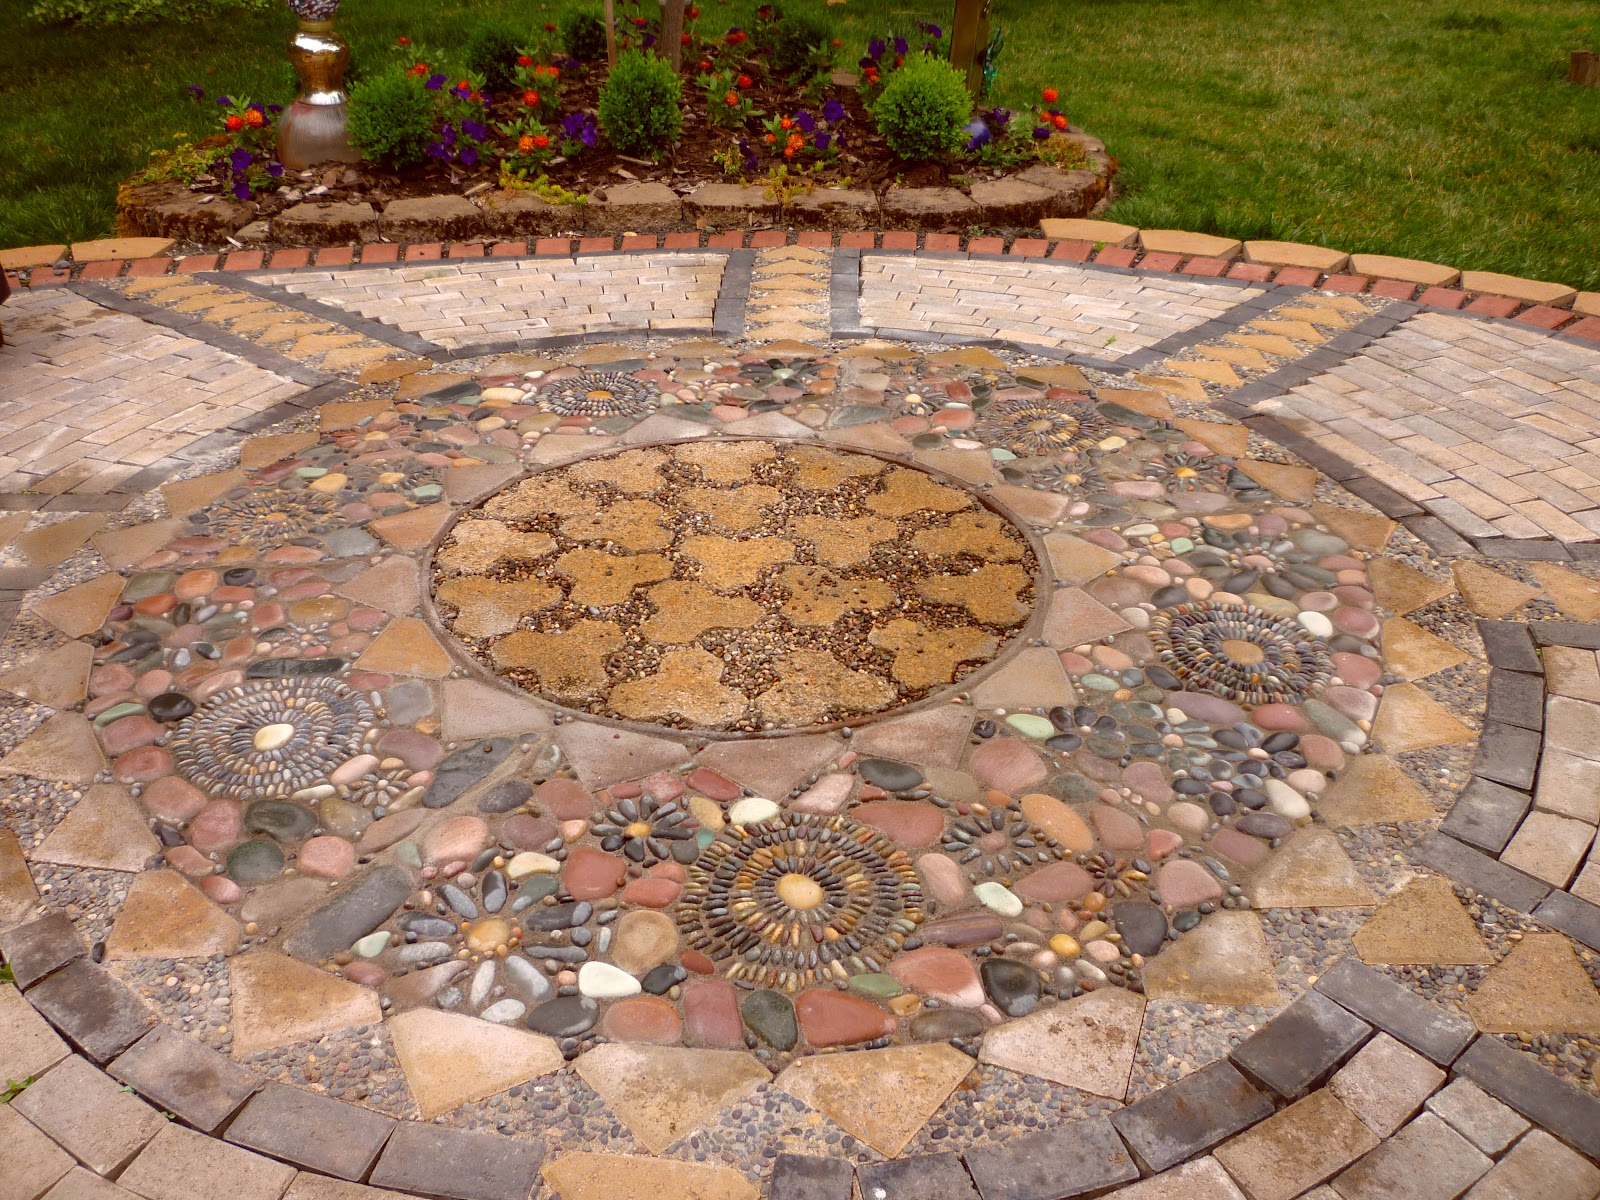 Wow Thats A Busy Garden Creating Paver And Pebble